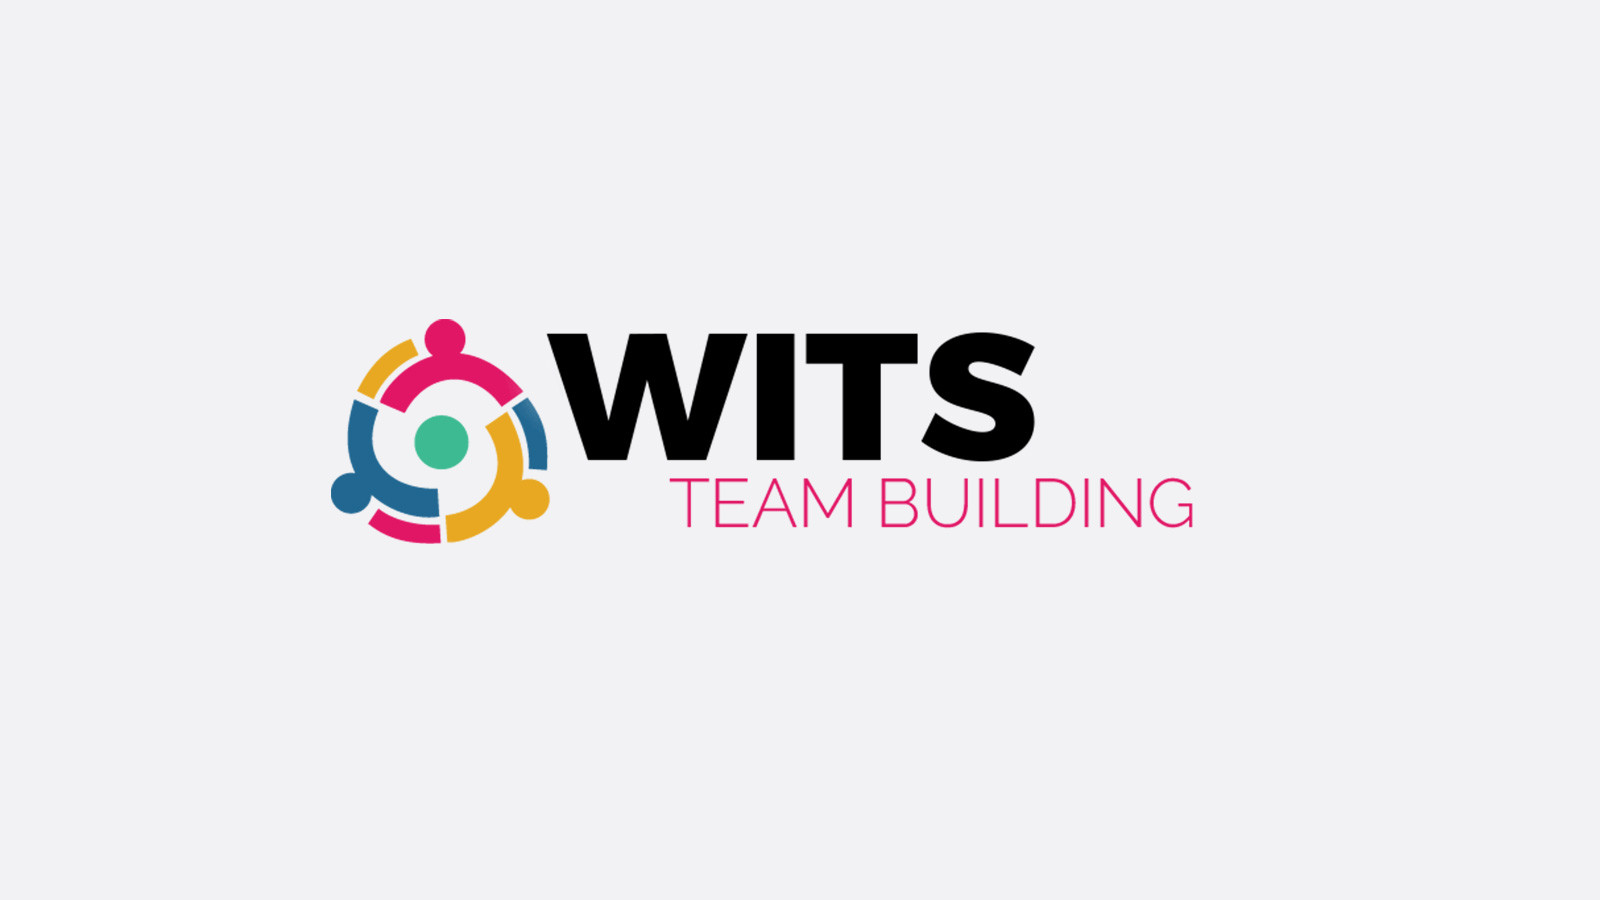 WITS Team Building logo